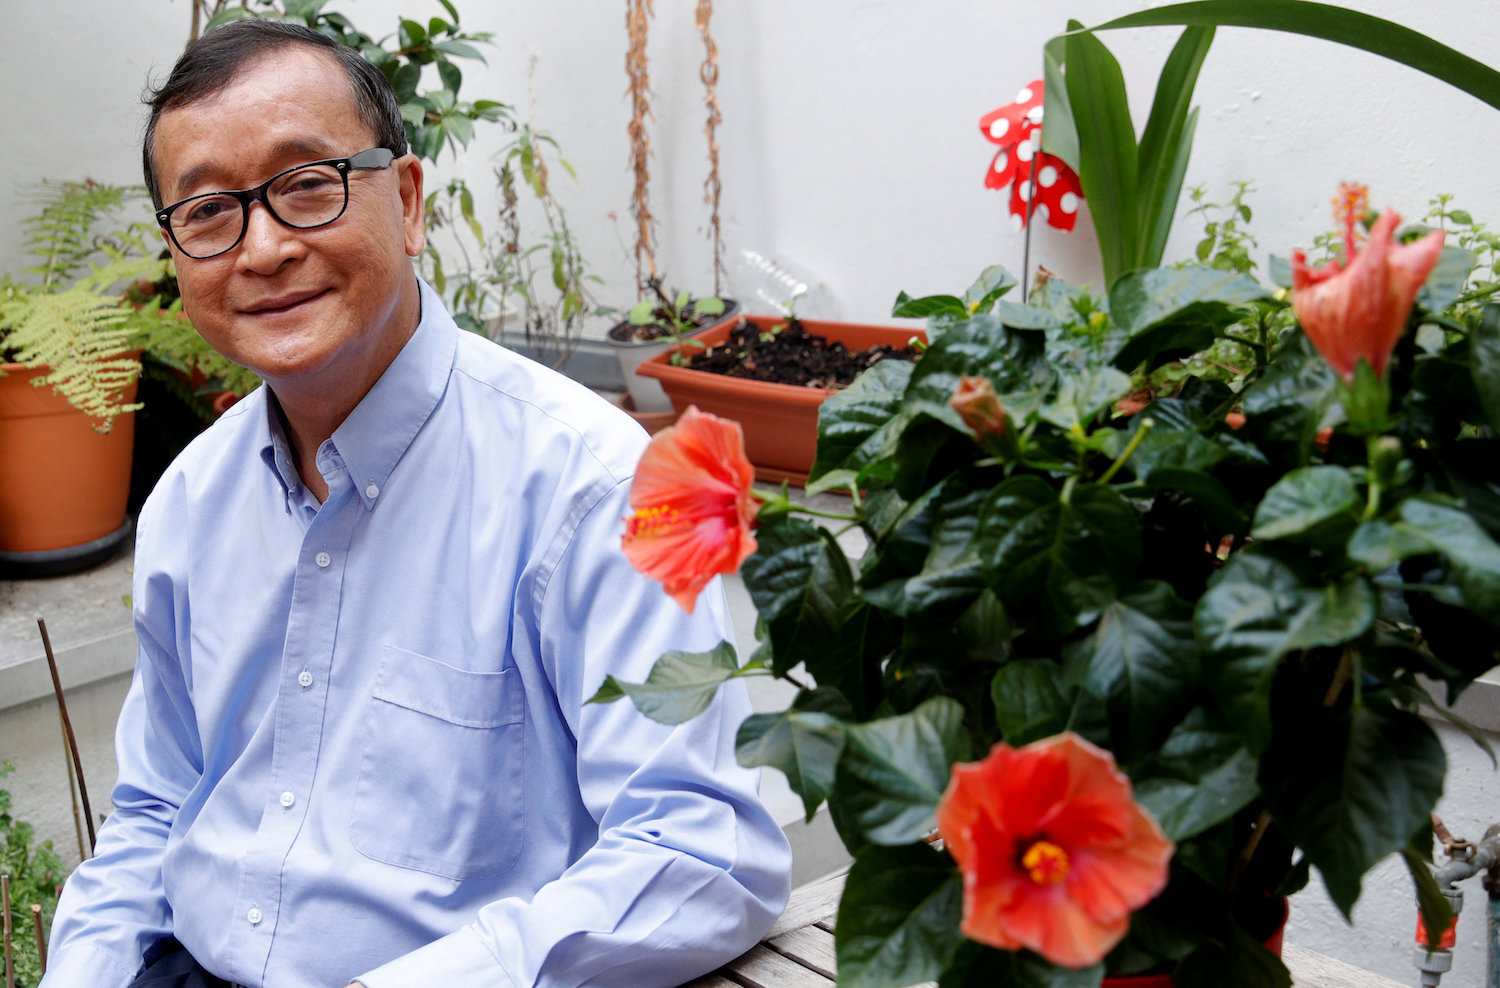 Sam Rainsy, who is living in exile, is photographed on his terrace in Paris in July 2018. (Reuters Photo)